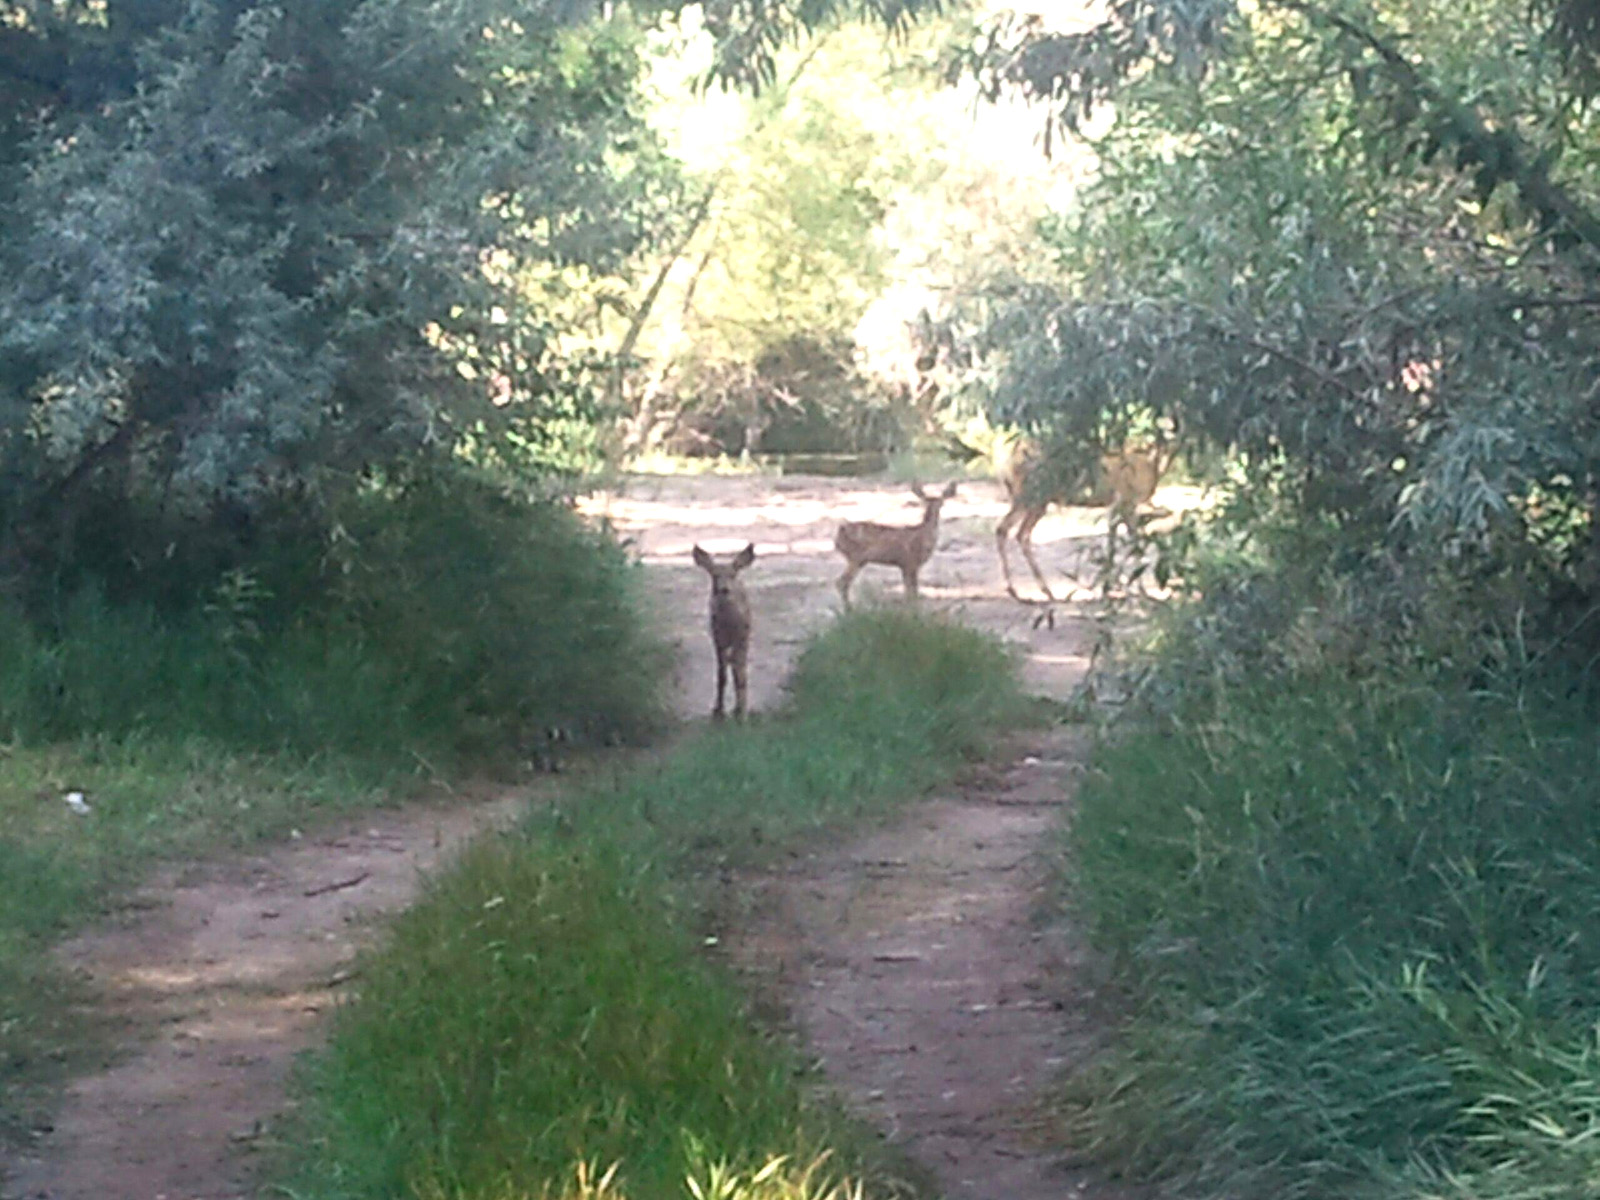 Deer wandering on the Pateros Creek property